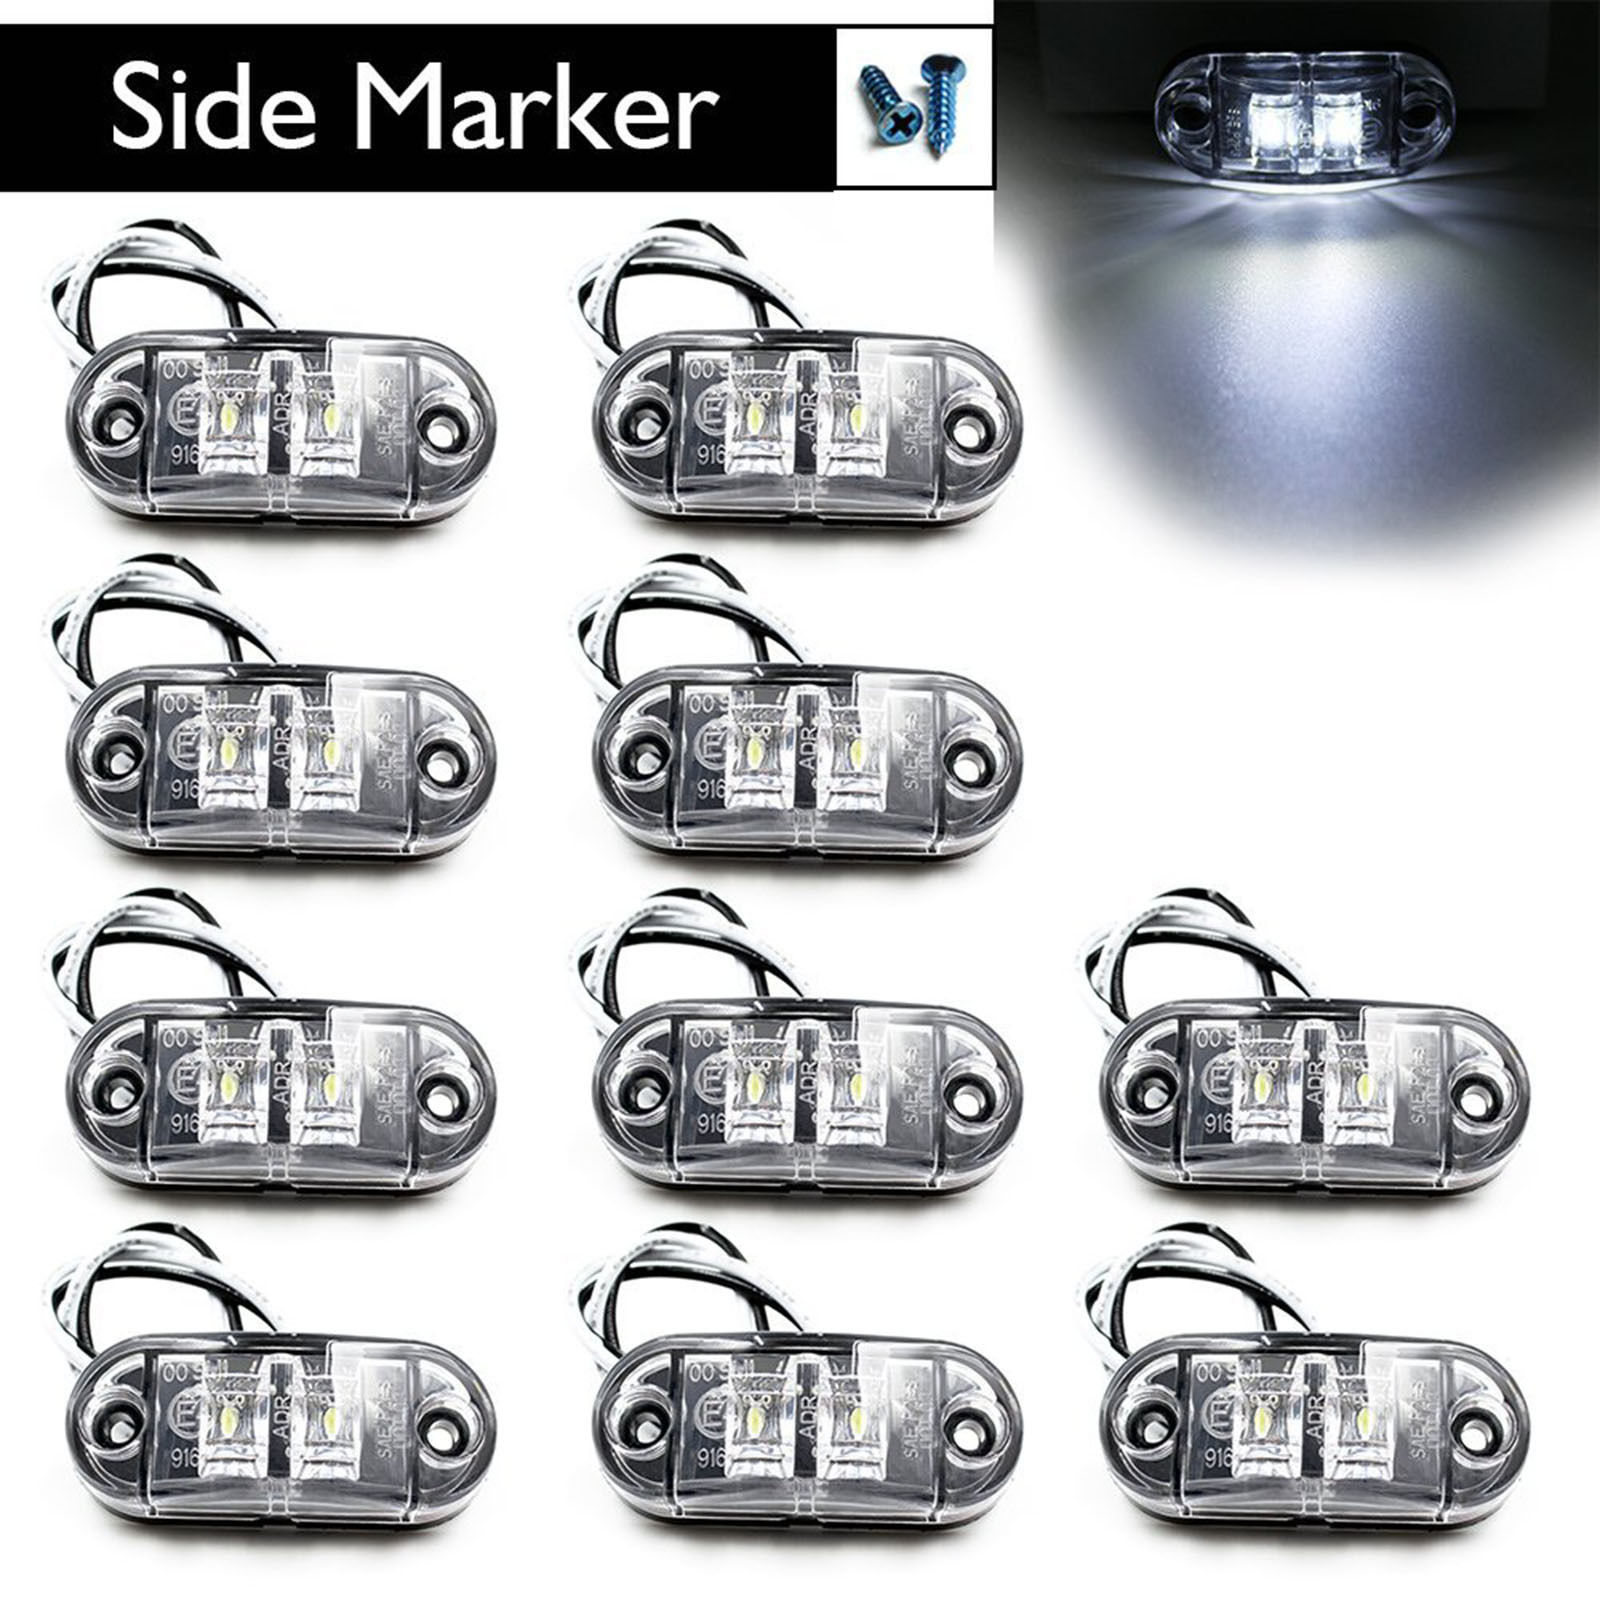 CYAN SOIL BAY Car Styling Accessories 10X White Side Marker Light Rear LED Clearence Lamp Indicators Truck Trailer Car Boat 10pcs 6 led red white green blue yellow amber clearence car truck bus lorry trailer side marker indicators light lamp 12v 24v